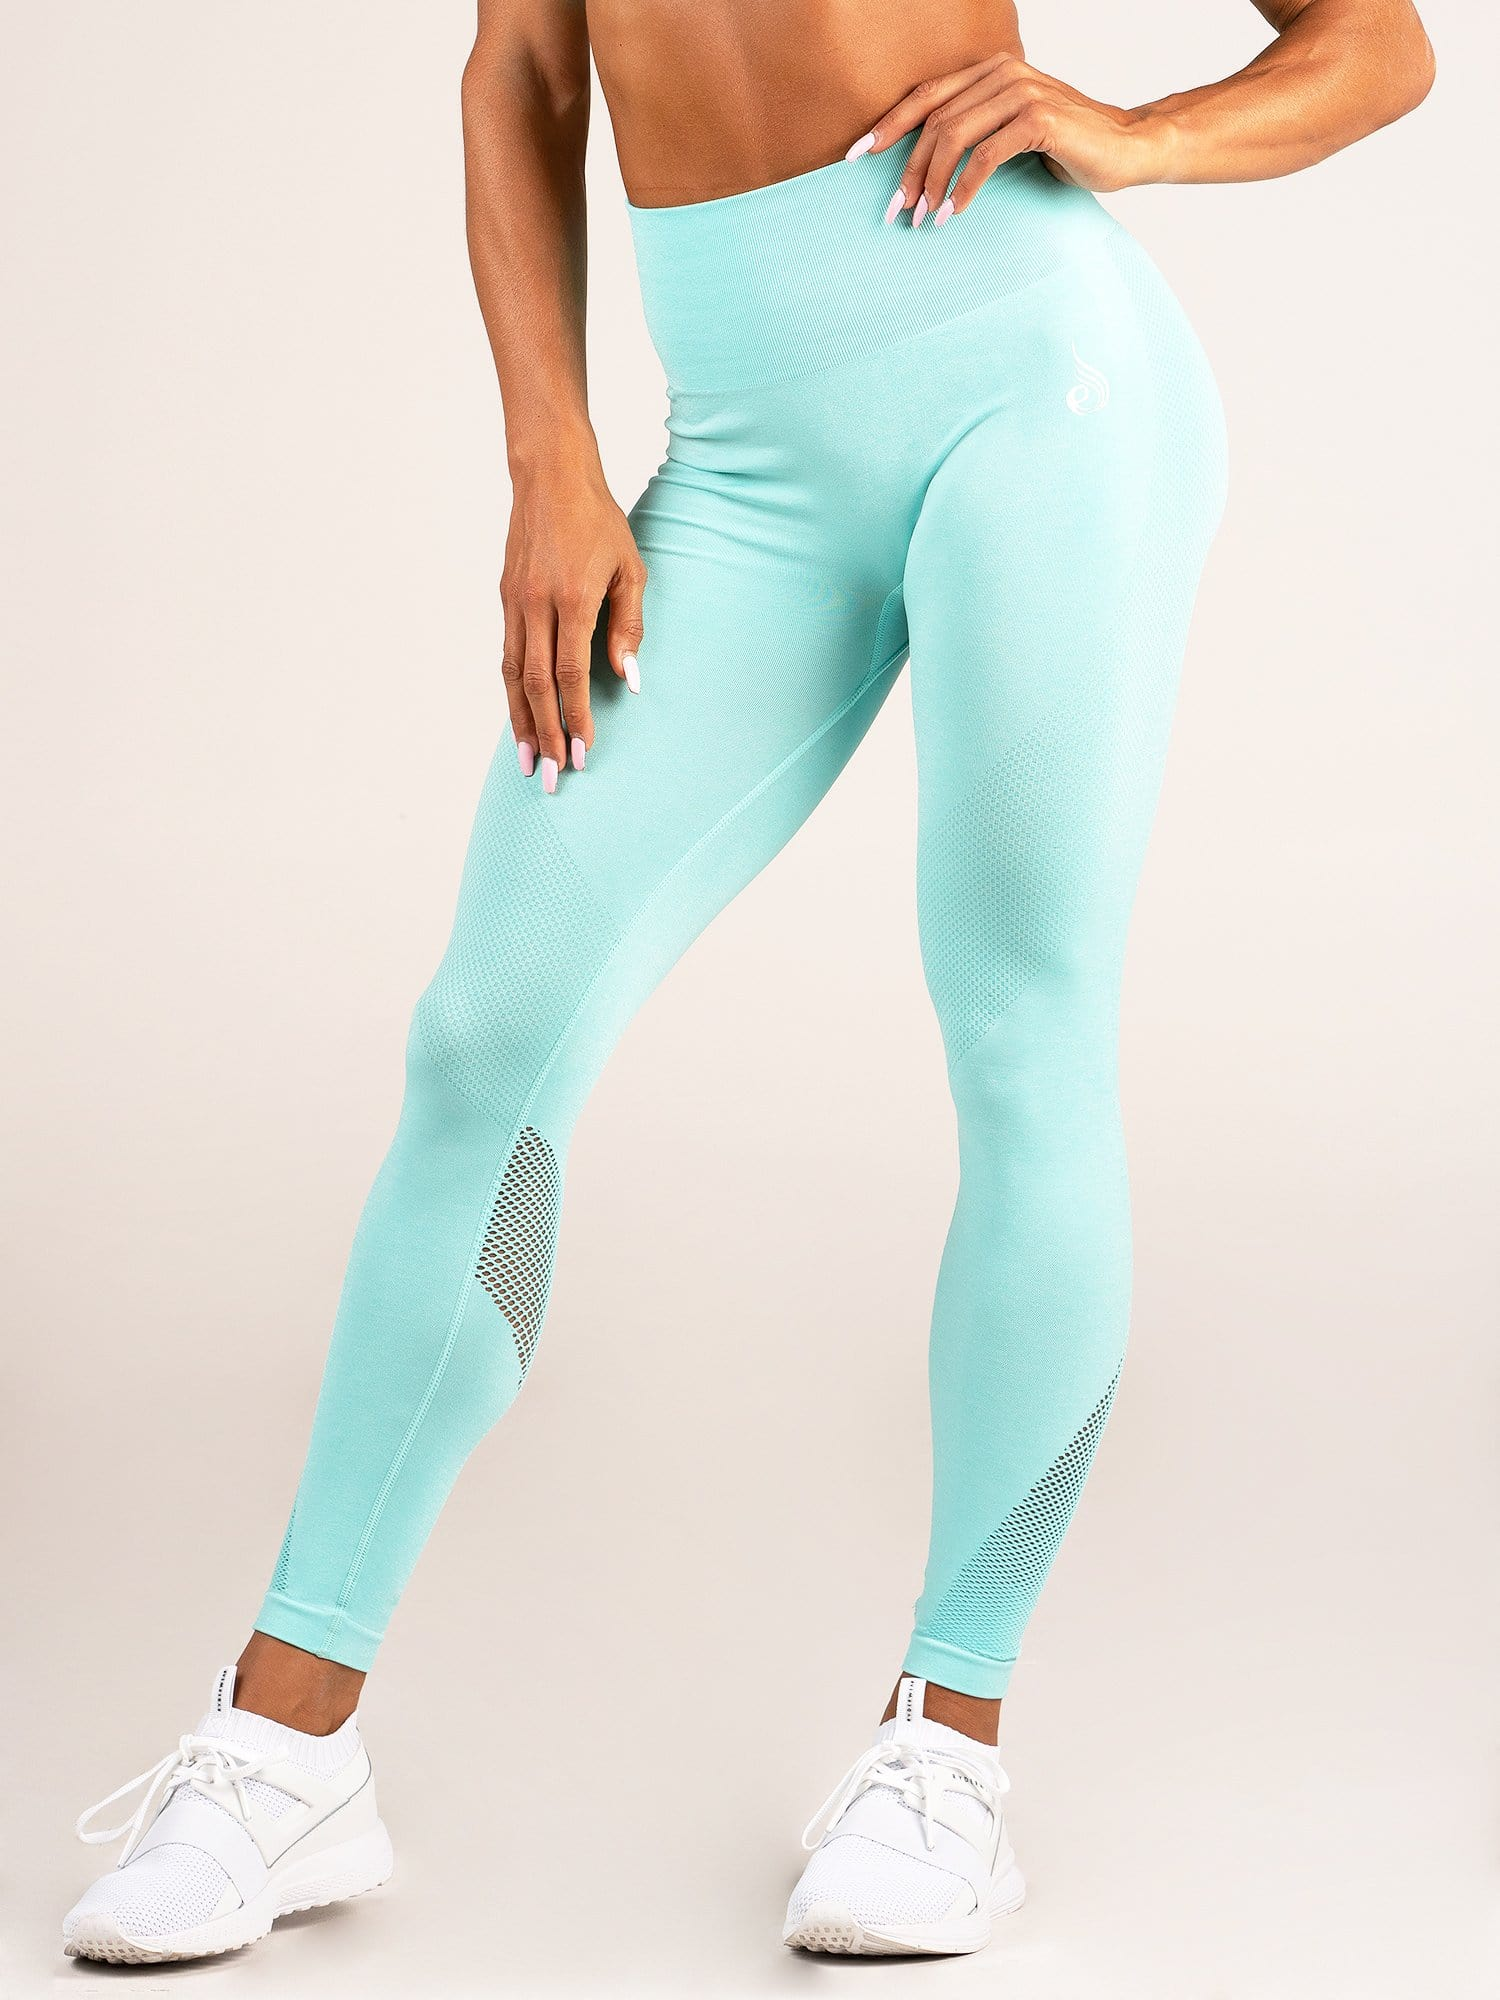 Seamless High Waist Leggings Aqua Marl - Tonic UAE Seamless High Waist Leggings Aqua Marl - Athletic Wear Ryderwear - tonic athletic apparel Tonic UAE - tonic UAE